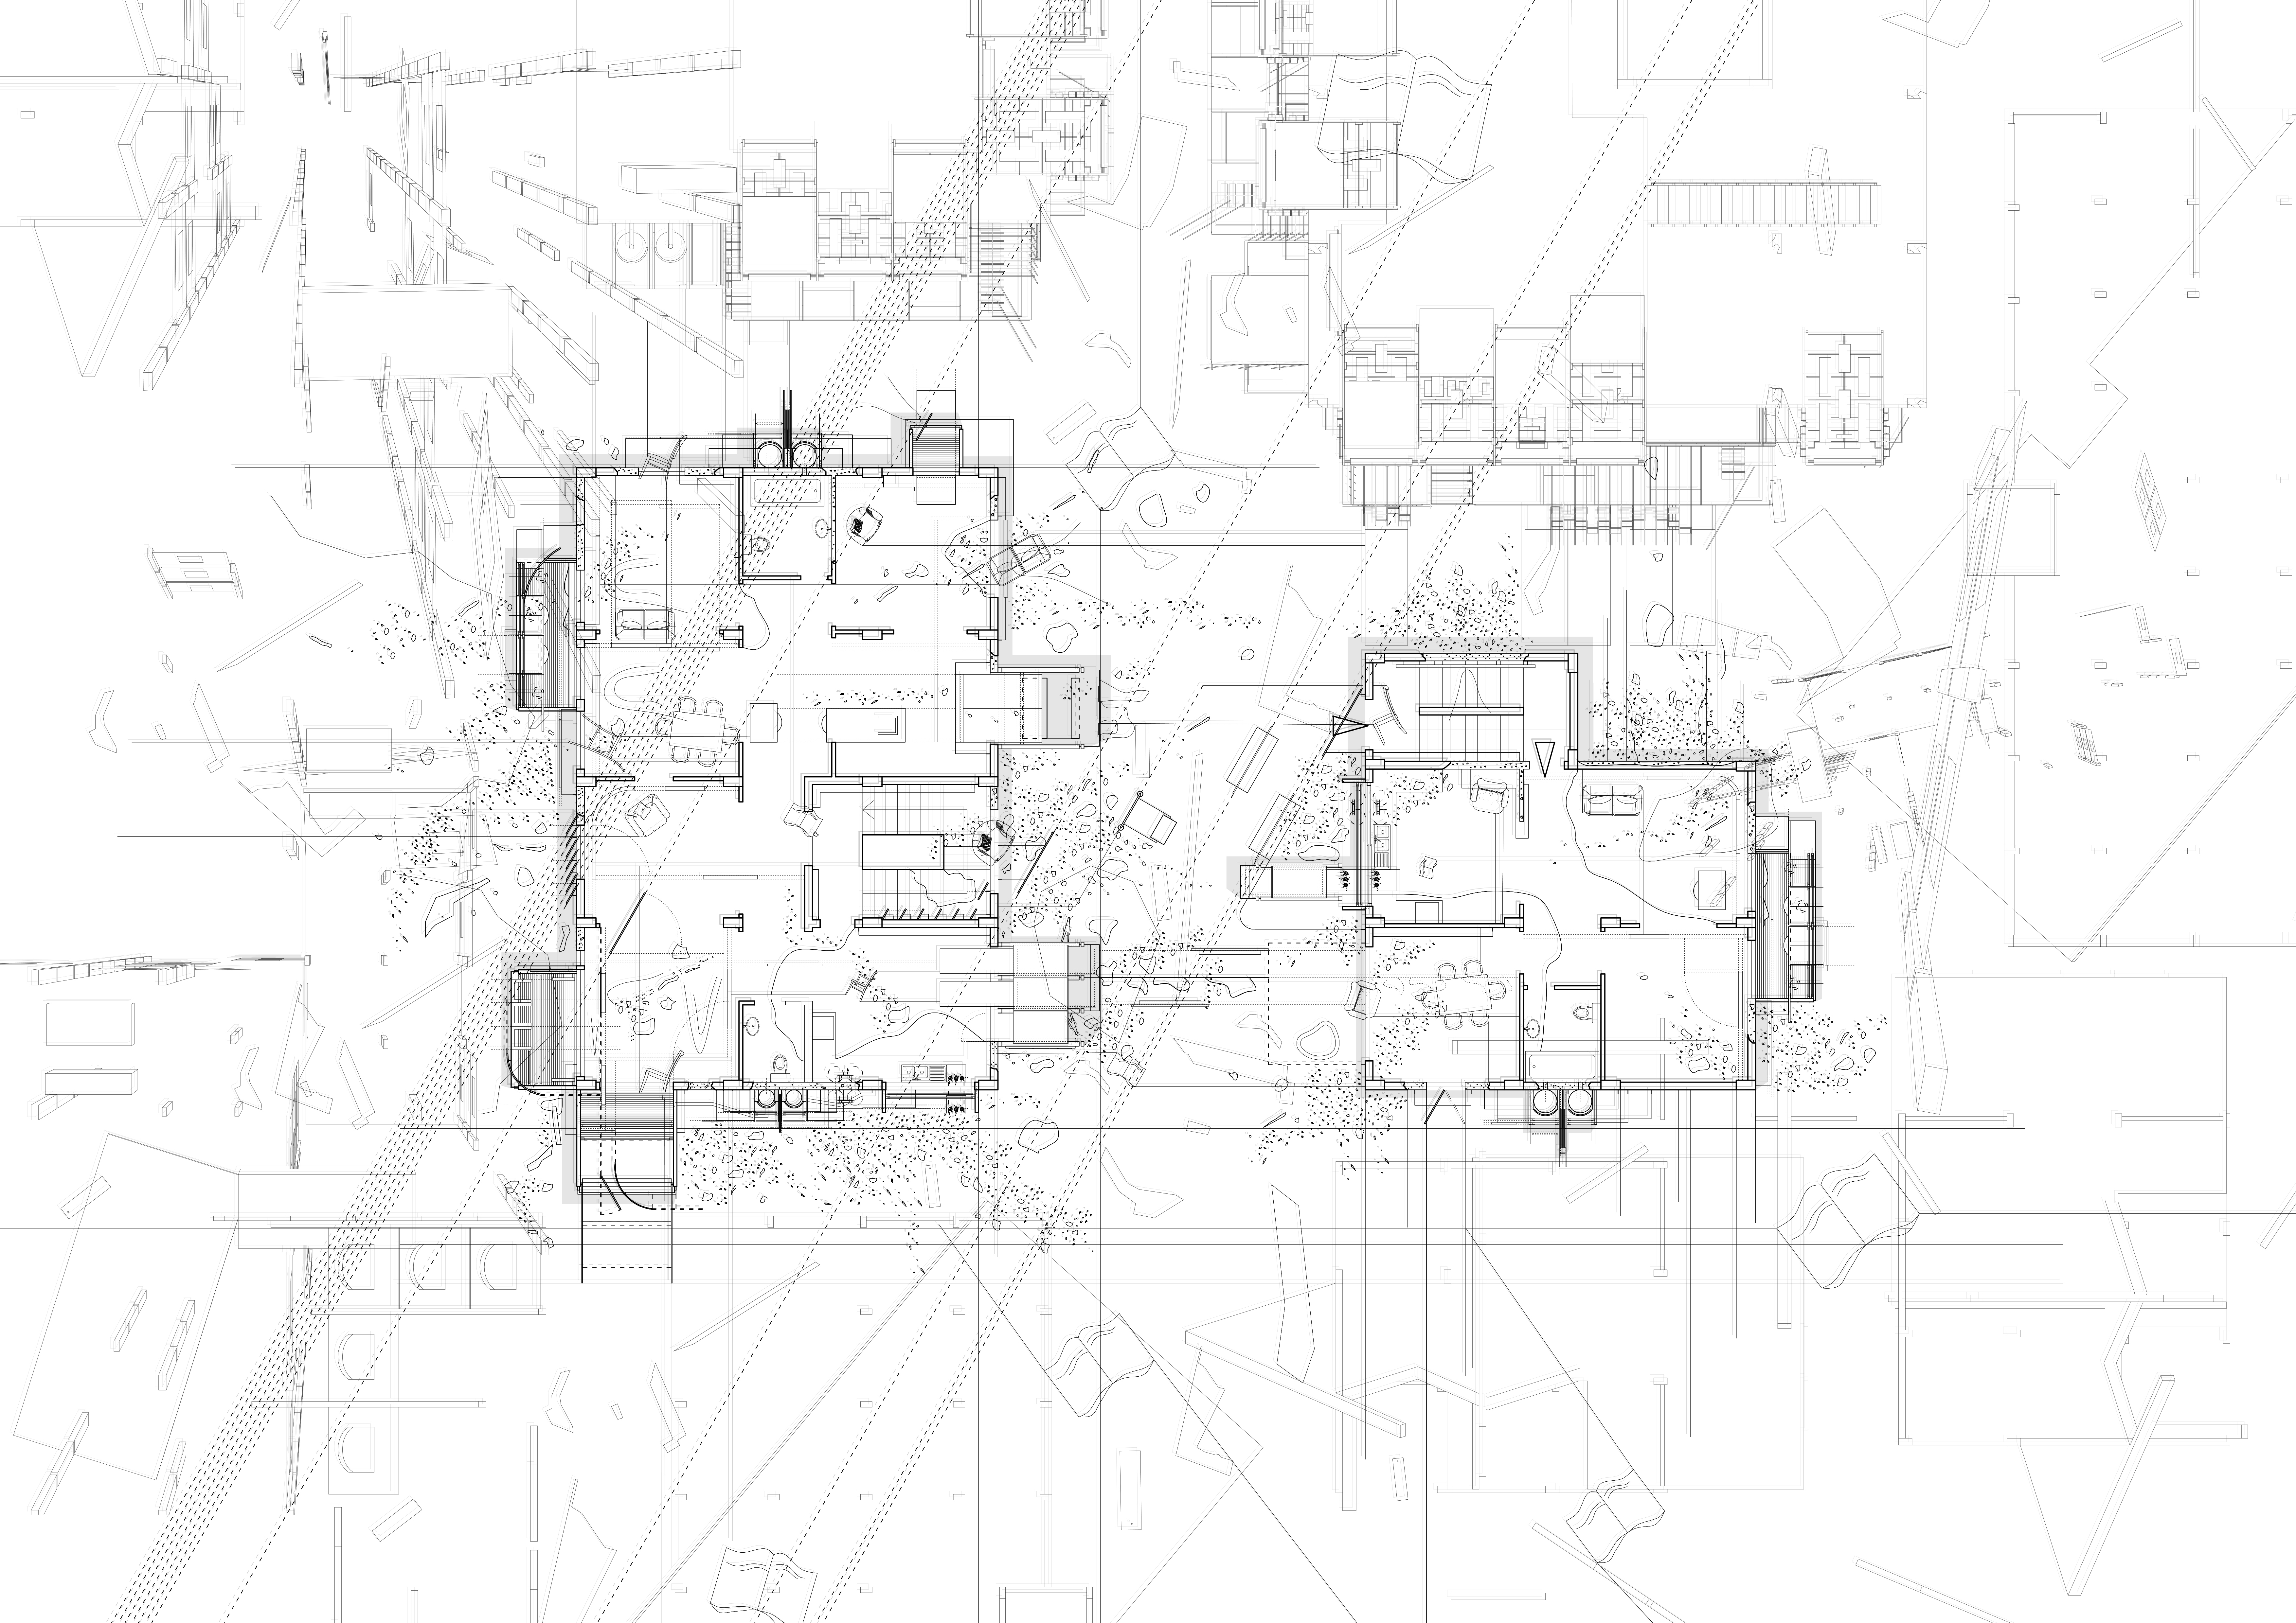 4. Plan; Exploded Collective, Rafaella Christodoulidi, Postgraduate (MArch Year I University of Westminster)